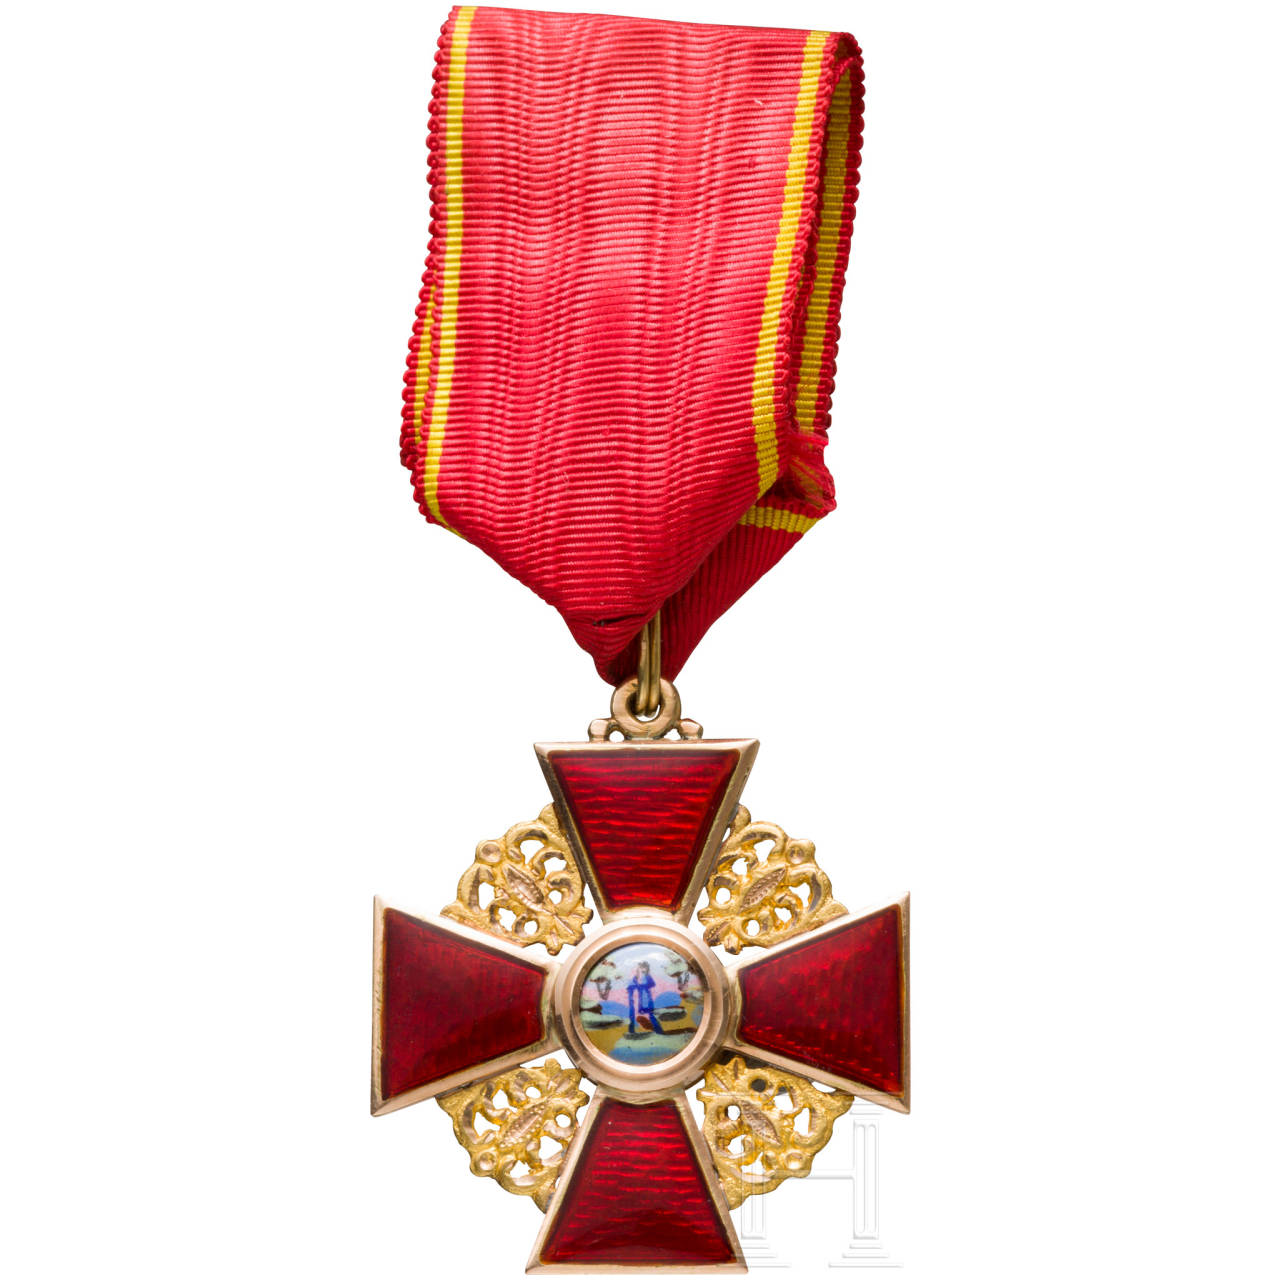 Order of St. Anne - 3rd class cross, around 1900